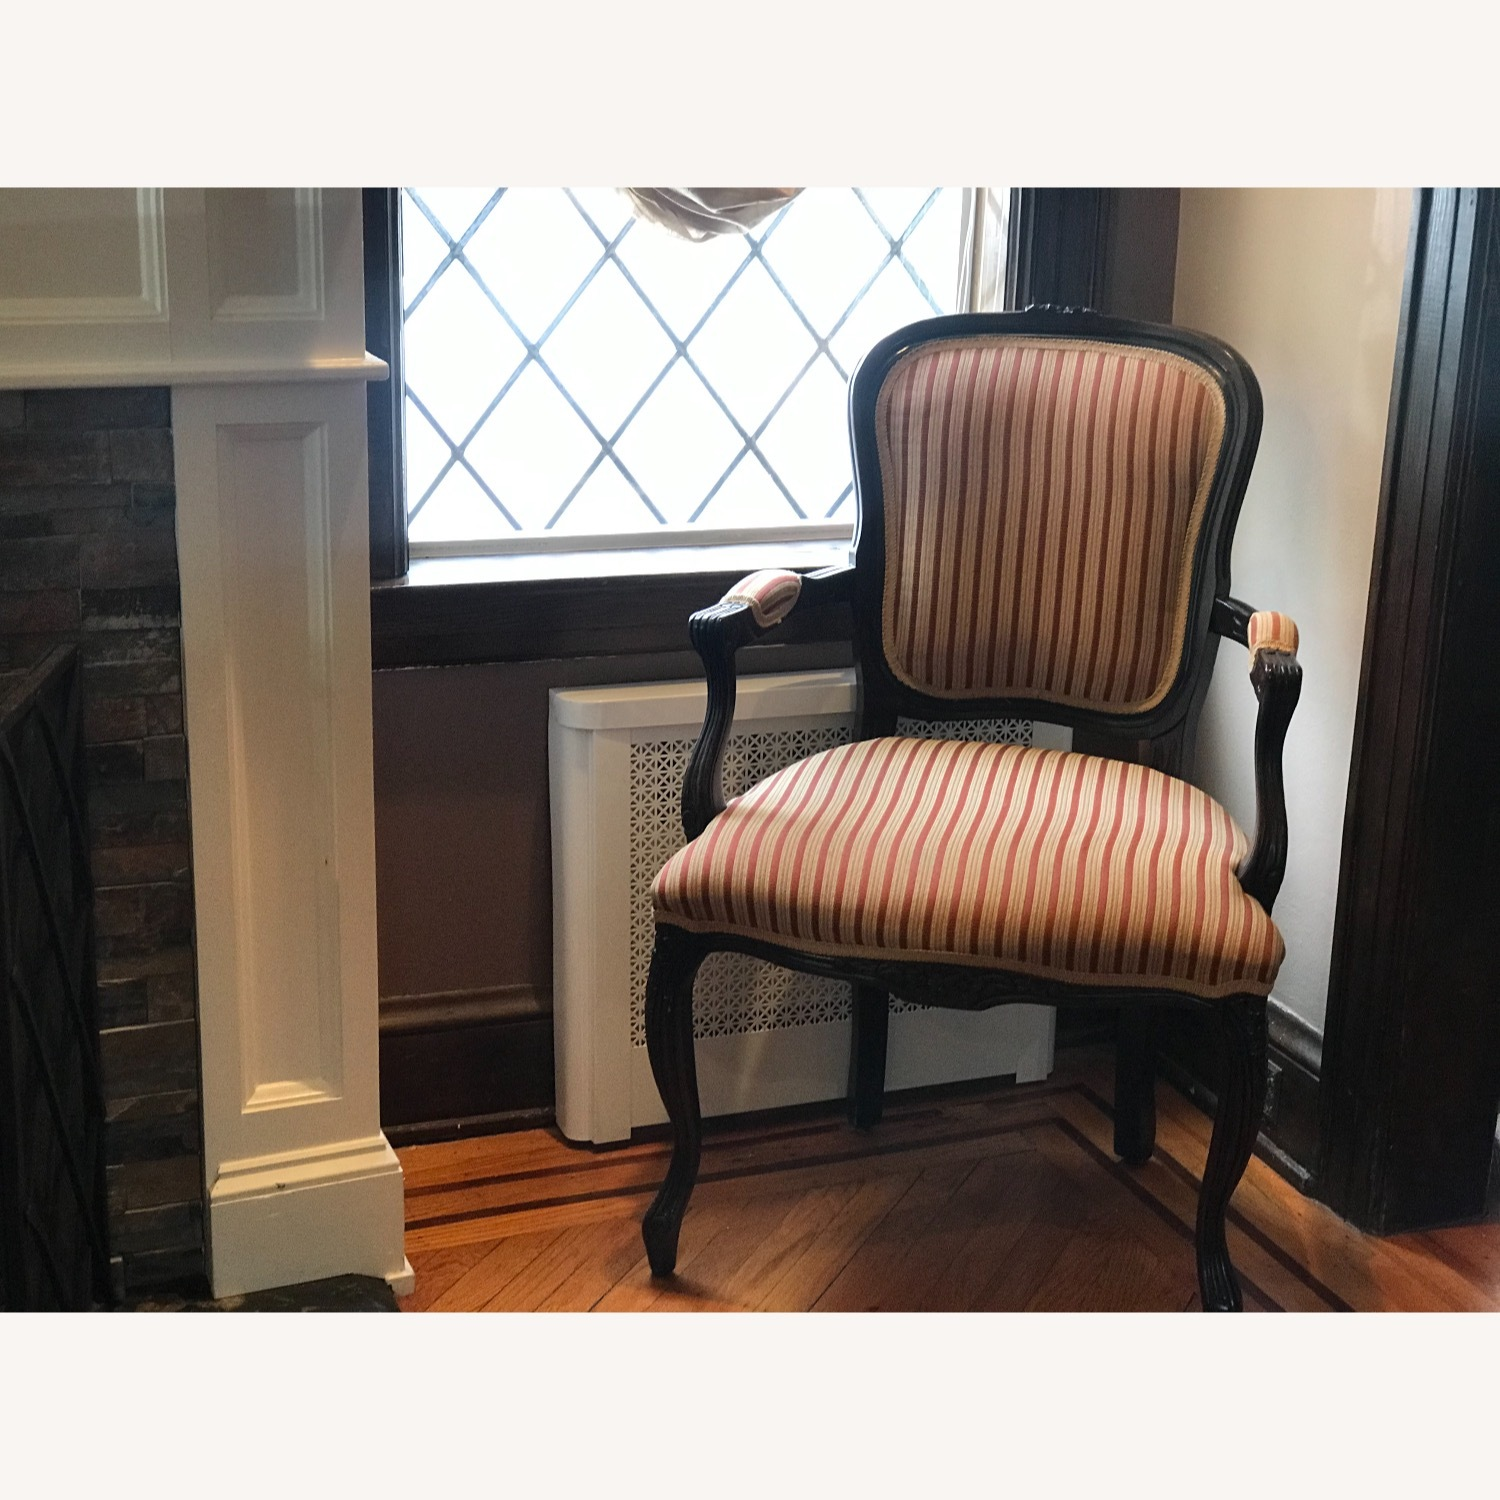 Raymour & Flanigan Striped Accent Chairs - image-3